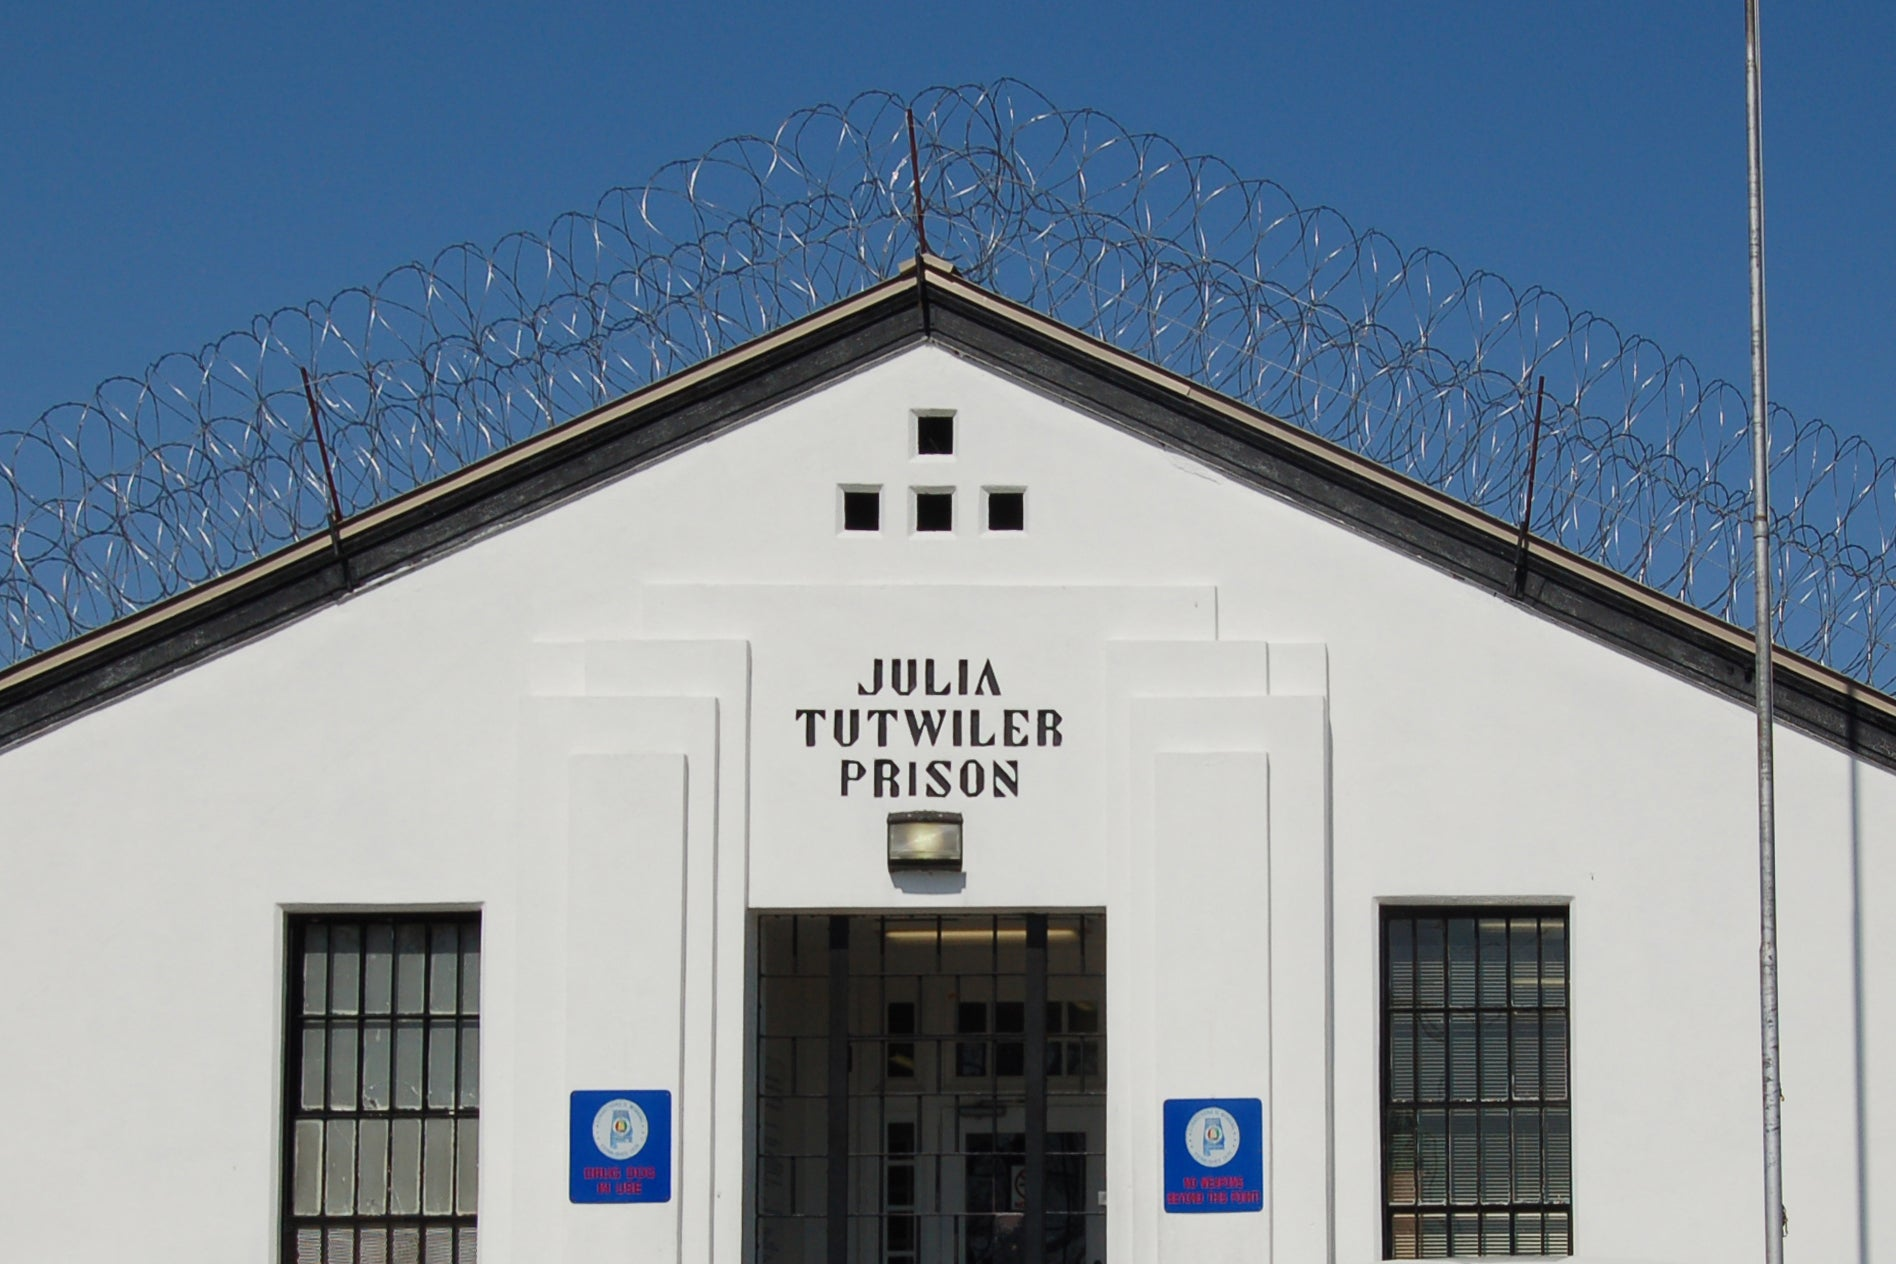 2010 USA Tutwiler Julia Tutwiler Prison for